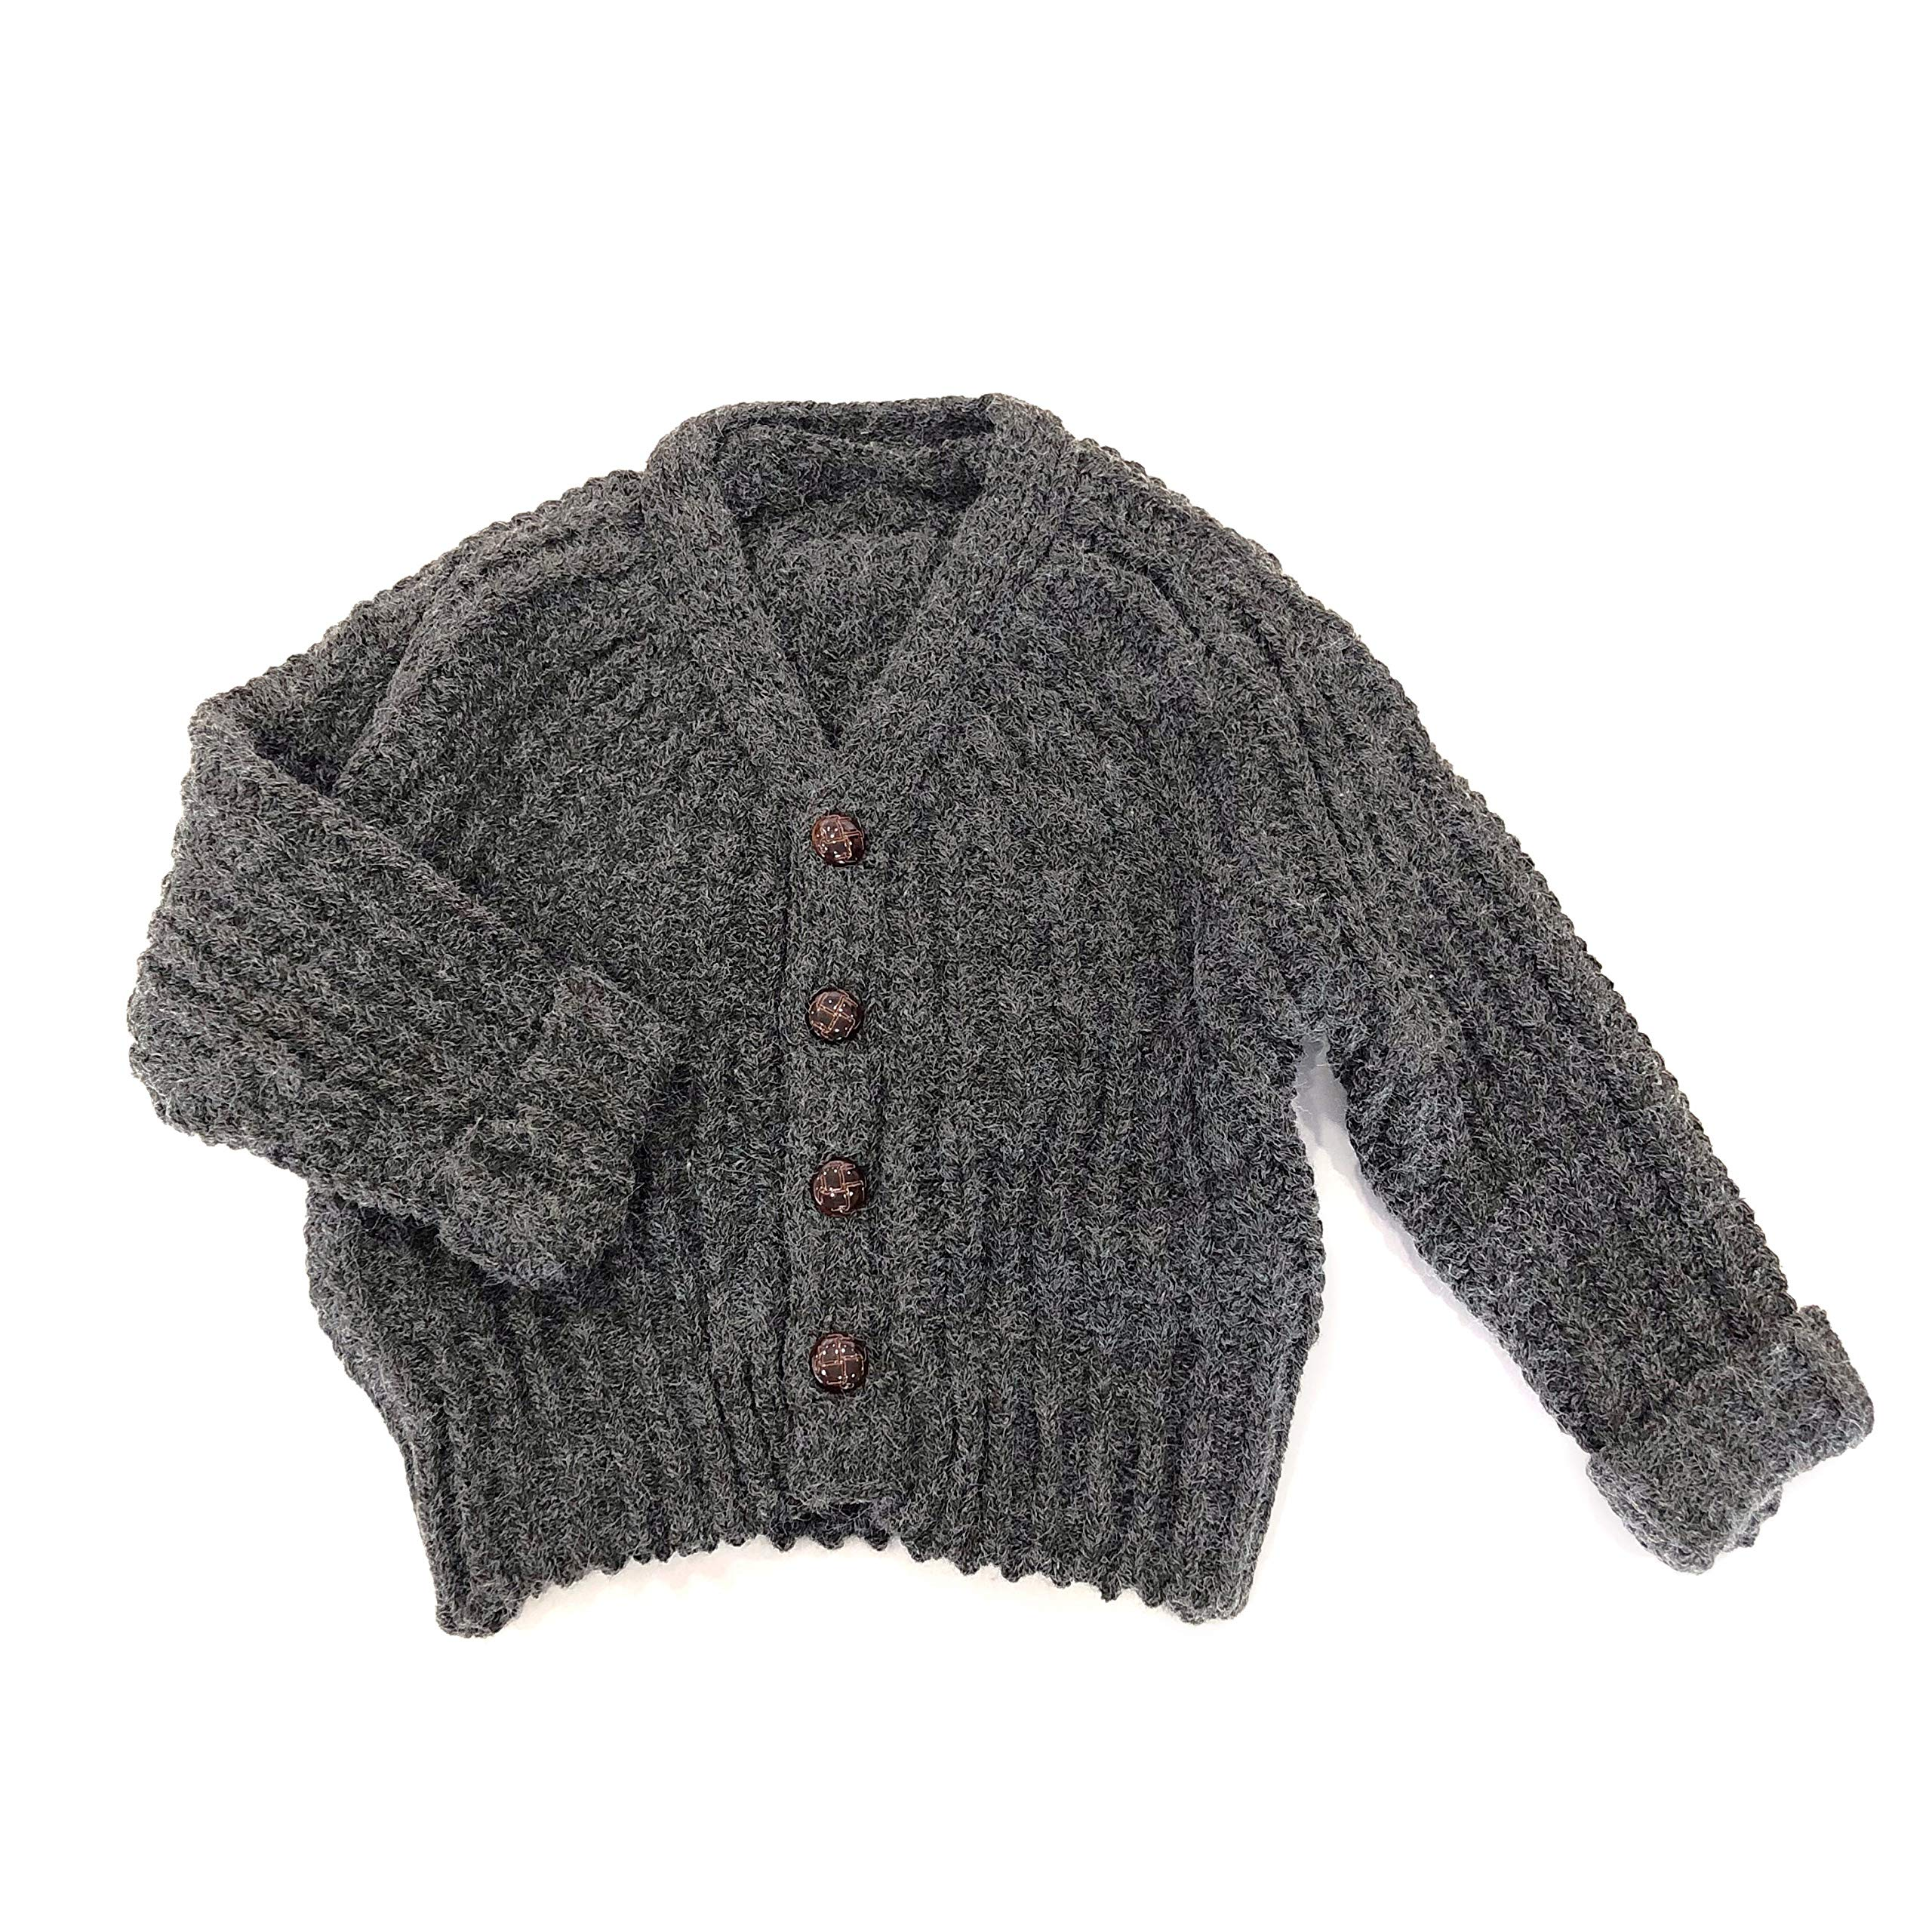 accsa Kid Long Sleeve Cable Knit Rib Chunky Sweater Button-Down Cardigan Age 7-8 Gray